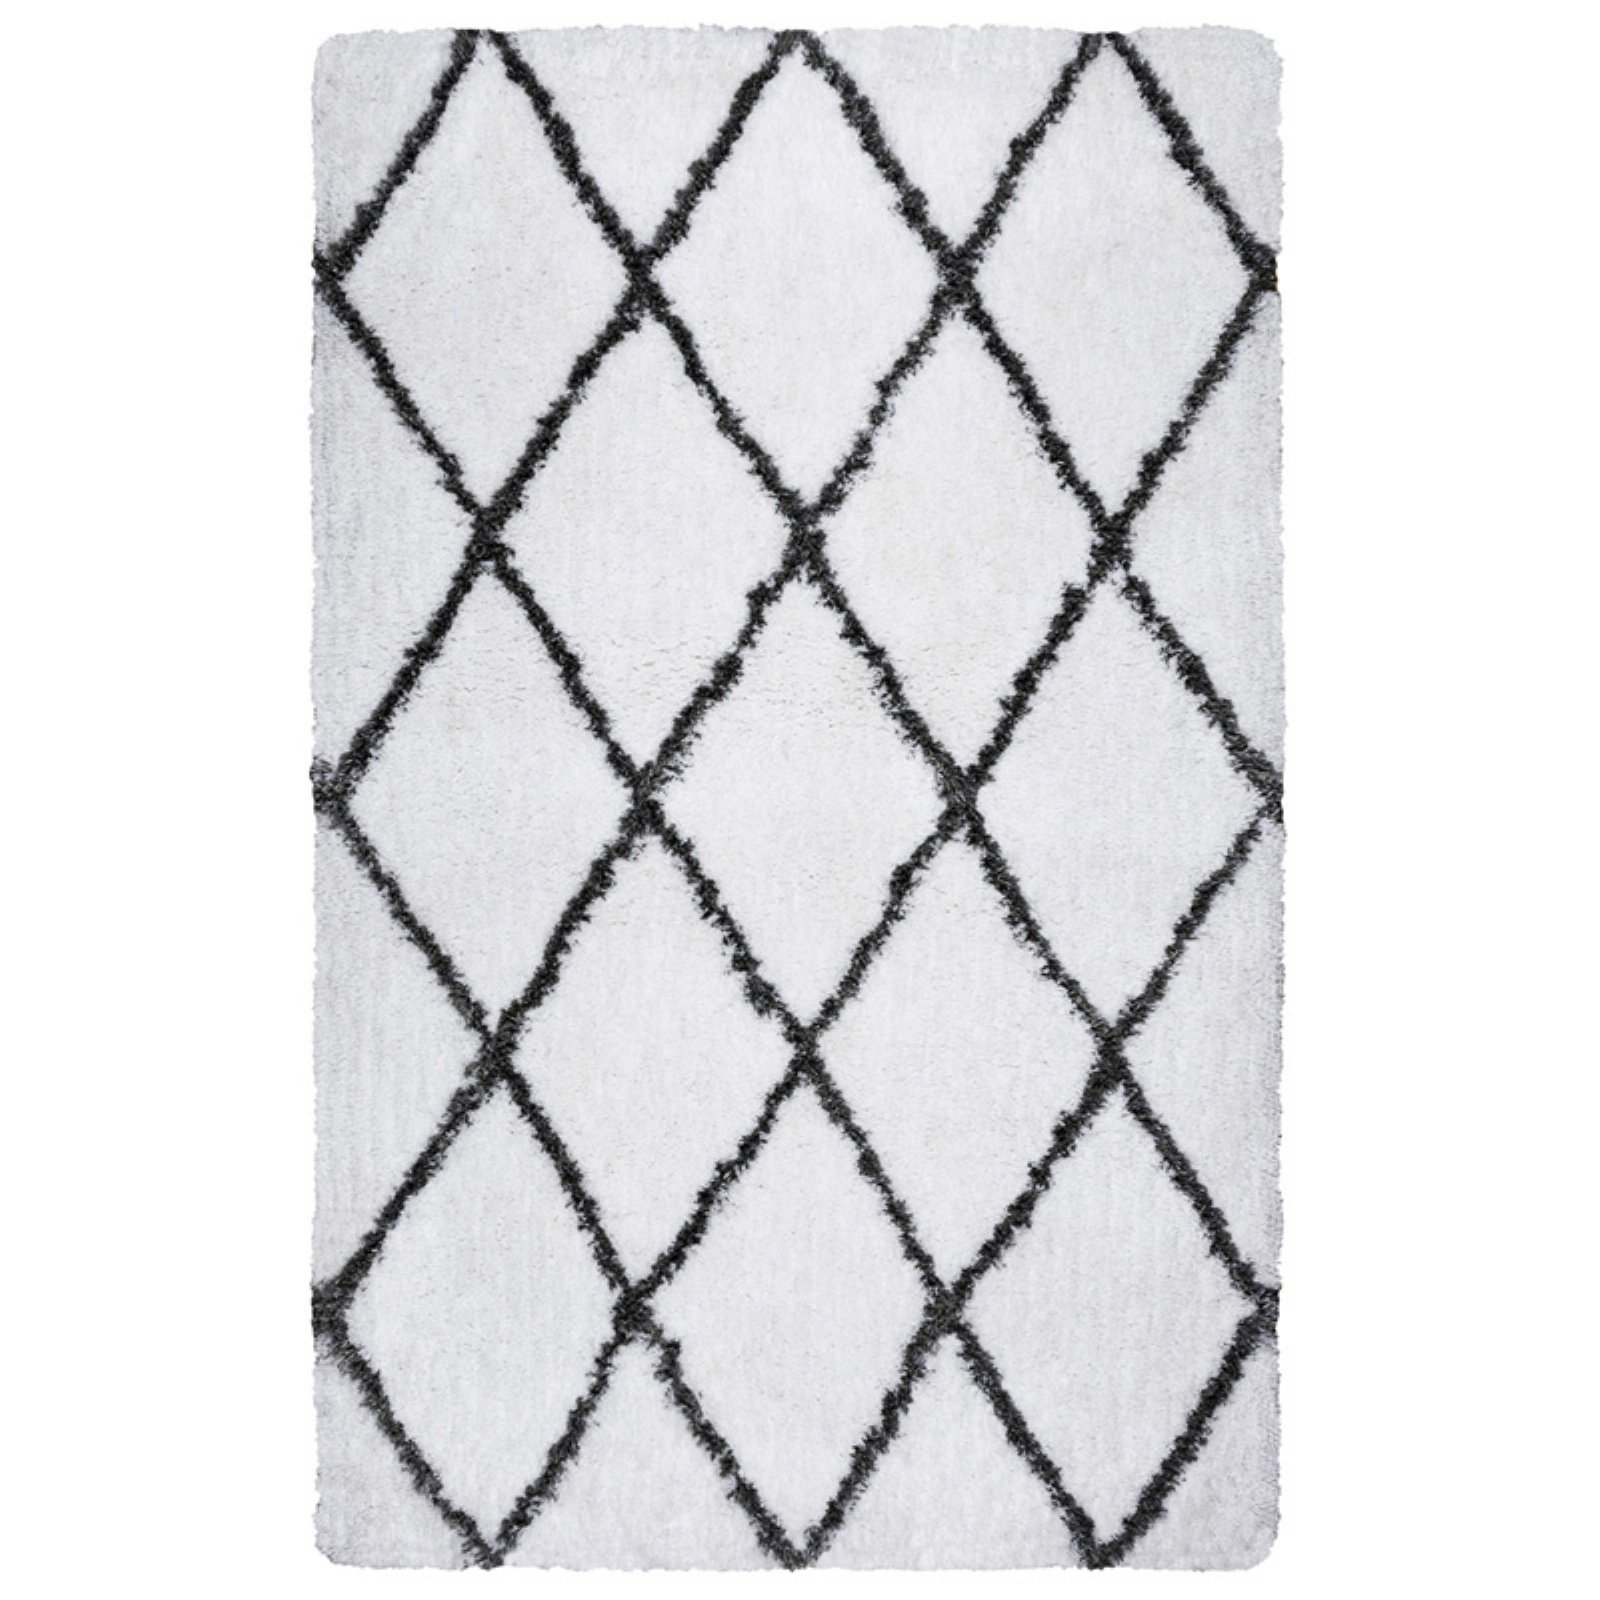 Rizzy Home Connex Cx002A White / Gray Area Rug 7 Feet 6 Inches X 9 Feet 6 Inches